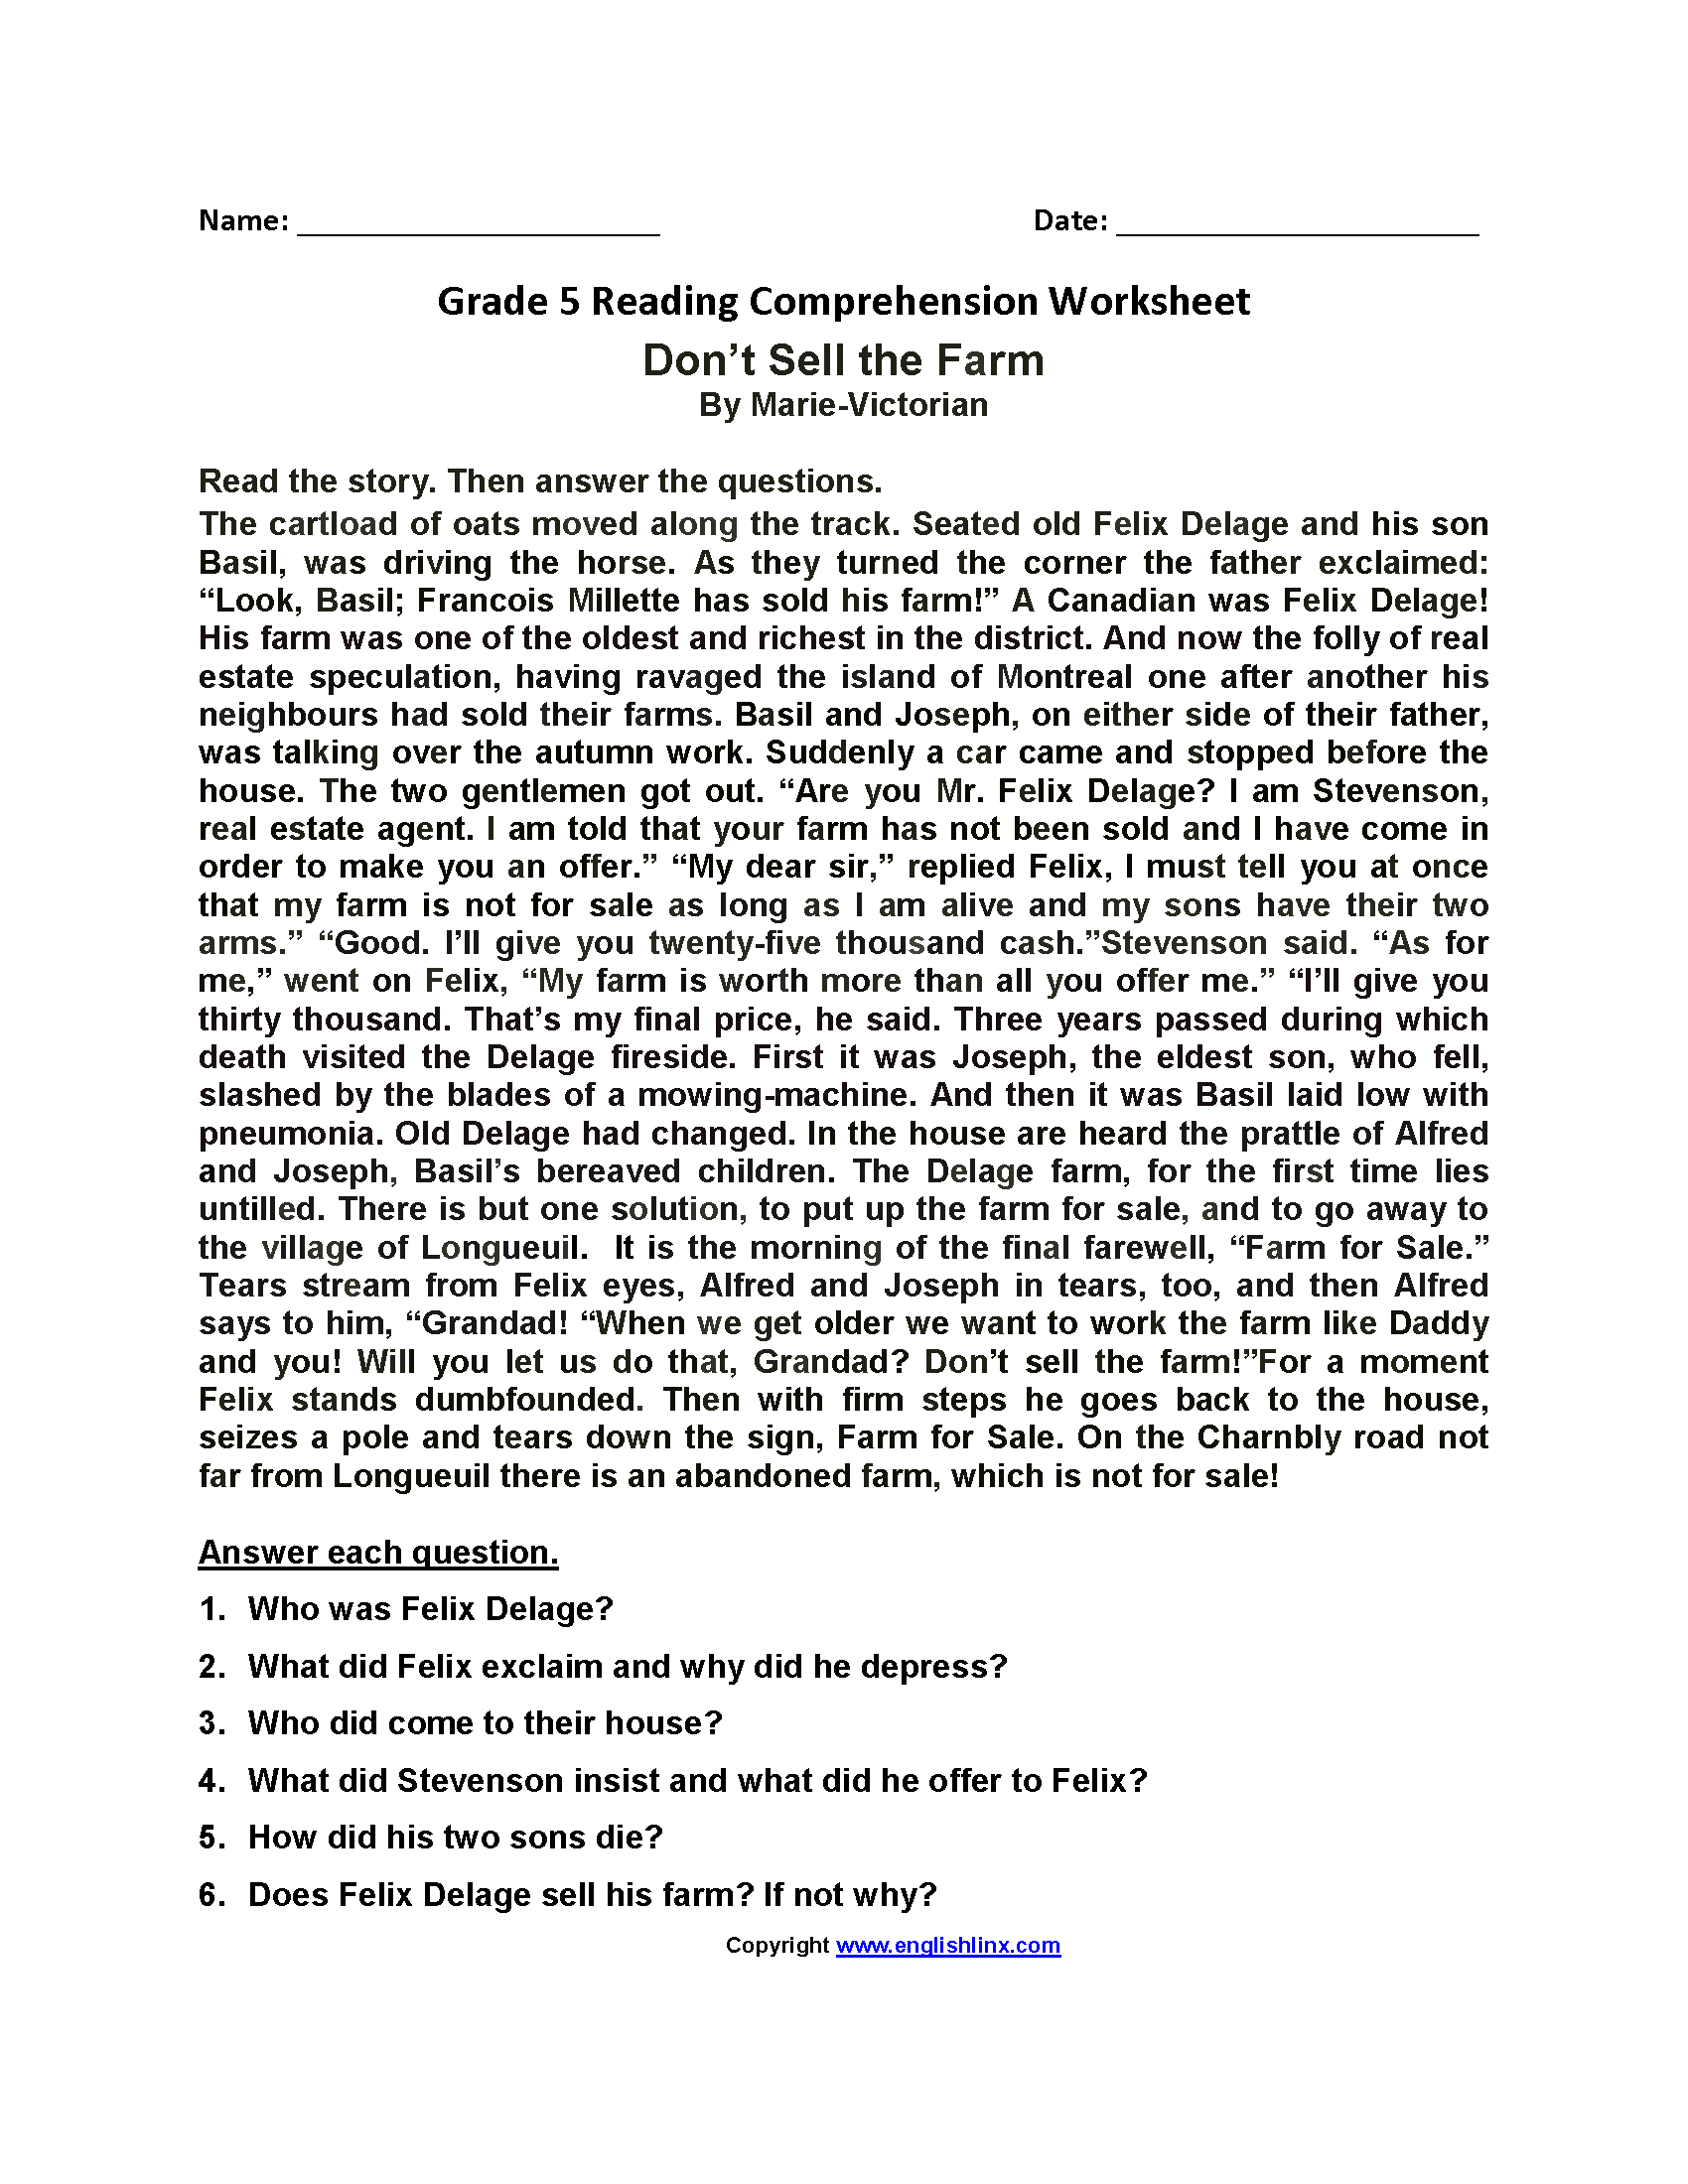 Homework Worksheets For 5th Graders